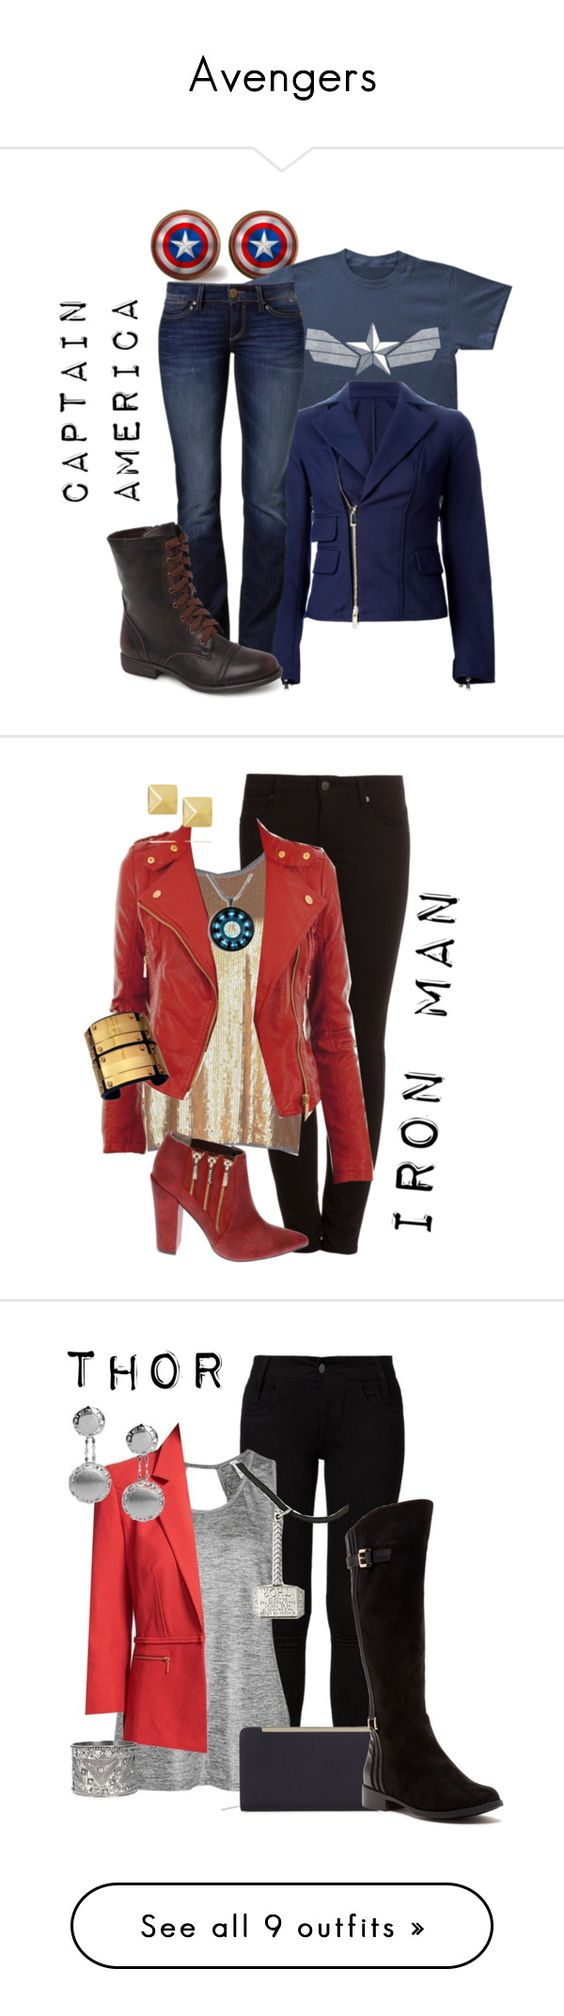 """""""Avengers"""" by sharedpieceofcake ❤ liked on Polyvore"""